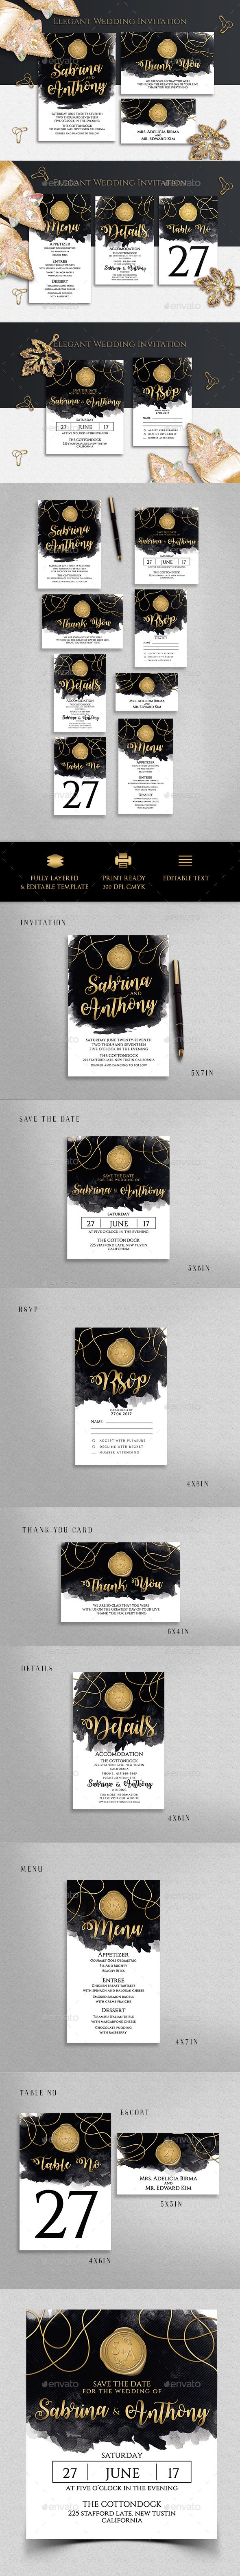 business event invitation templates%0A Wedding Invitation